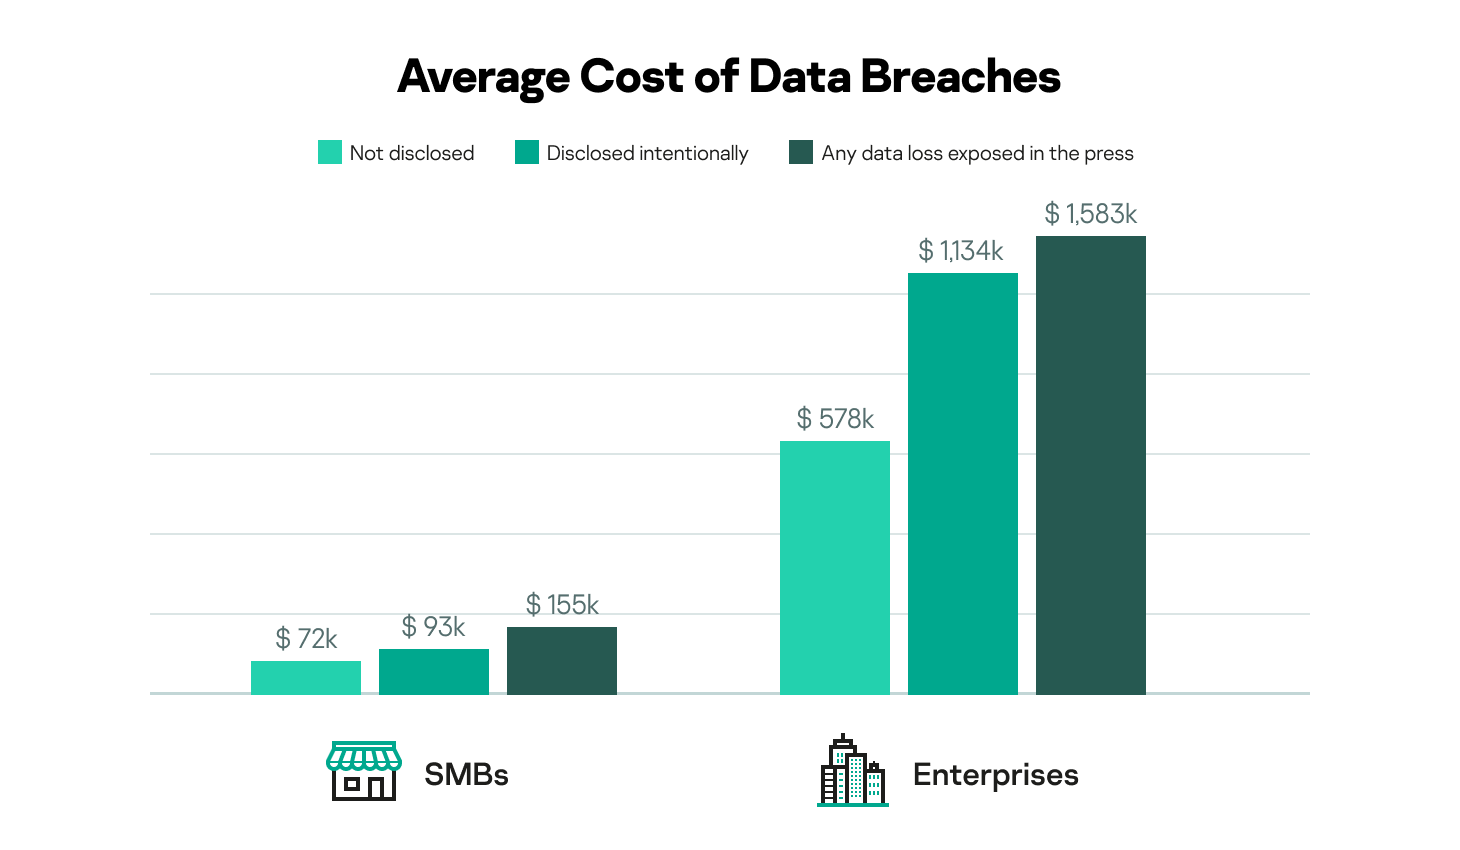 Average cost of data breaches amongst SMBs and enterprises